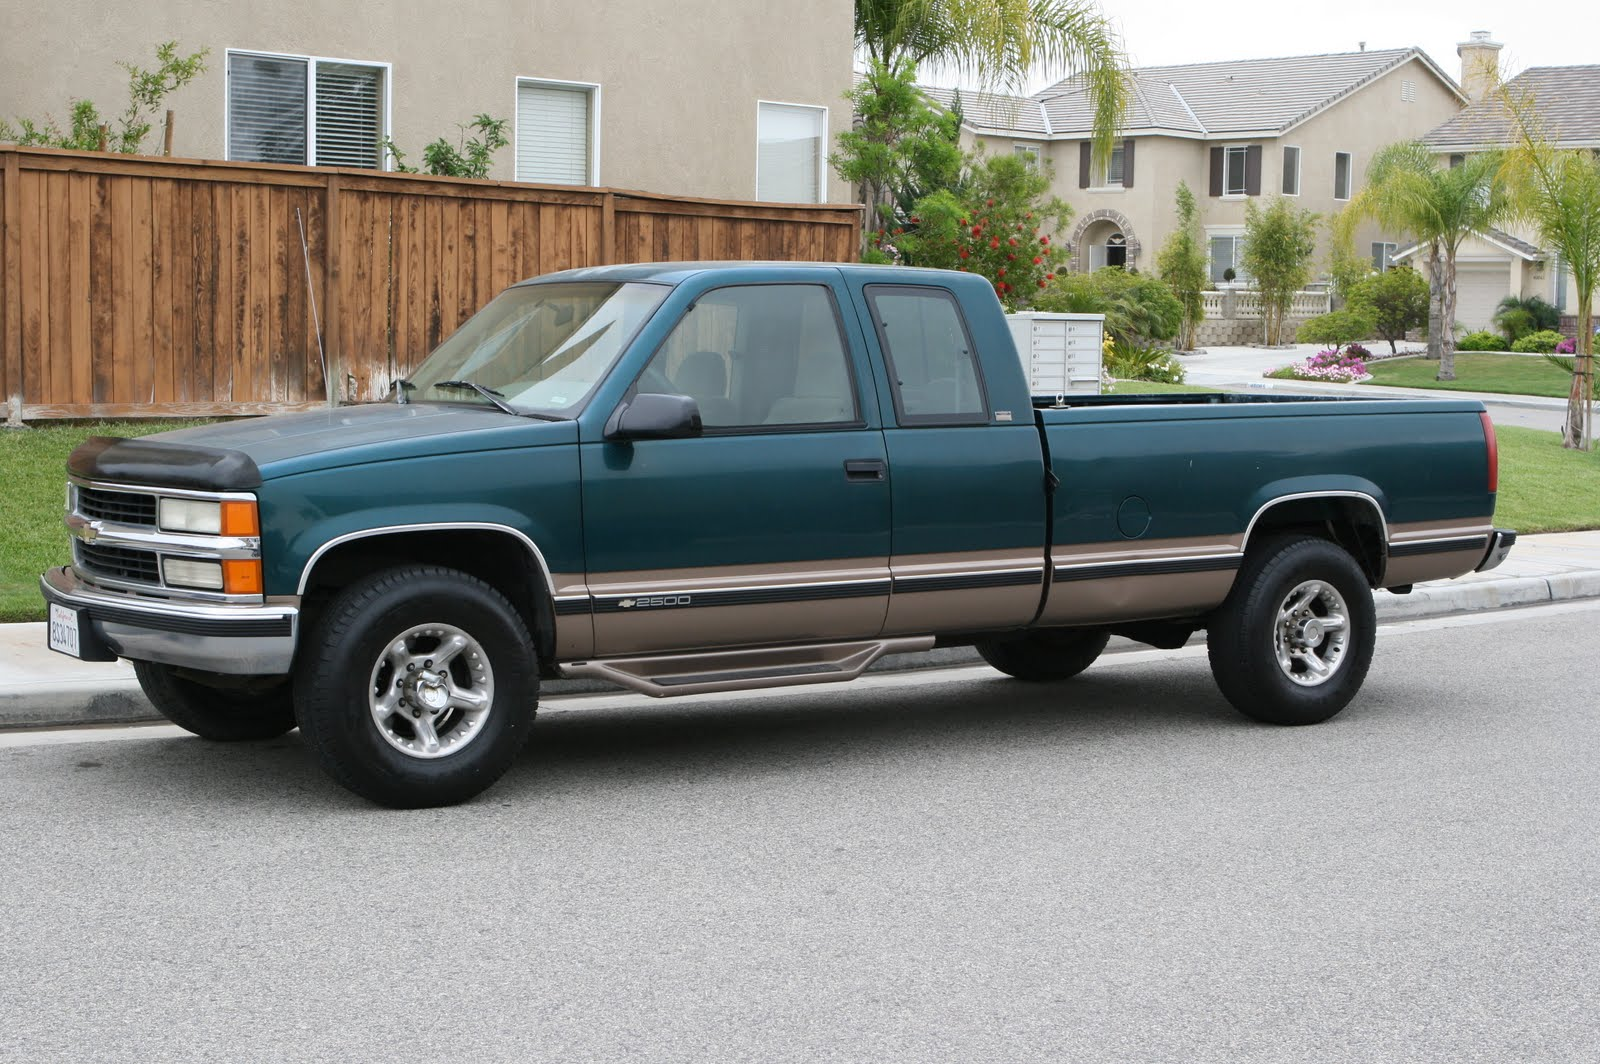 used chevrolet 2500hd truck for sale pick up truck 2wd autos post. Black Bedroom Furniture Sets. Home Design Ideas